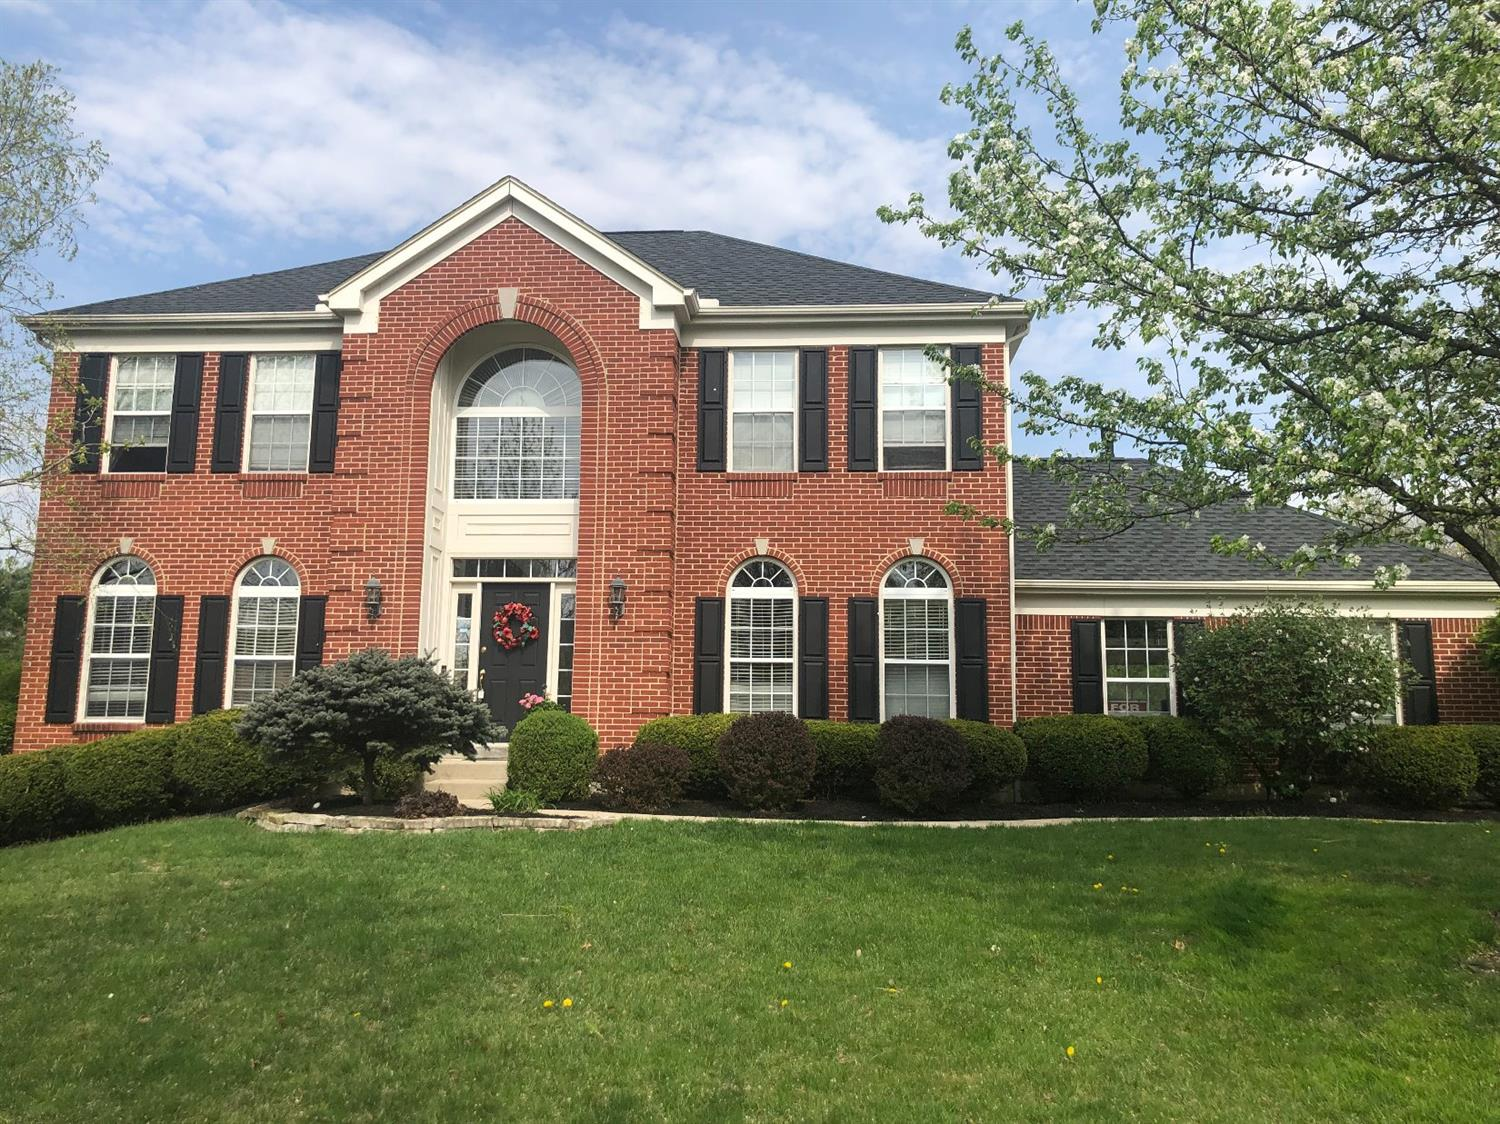 homes for sale in wedgewood maineville ohio little miami schools rh listingslittlemiami com